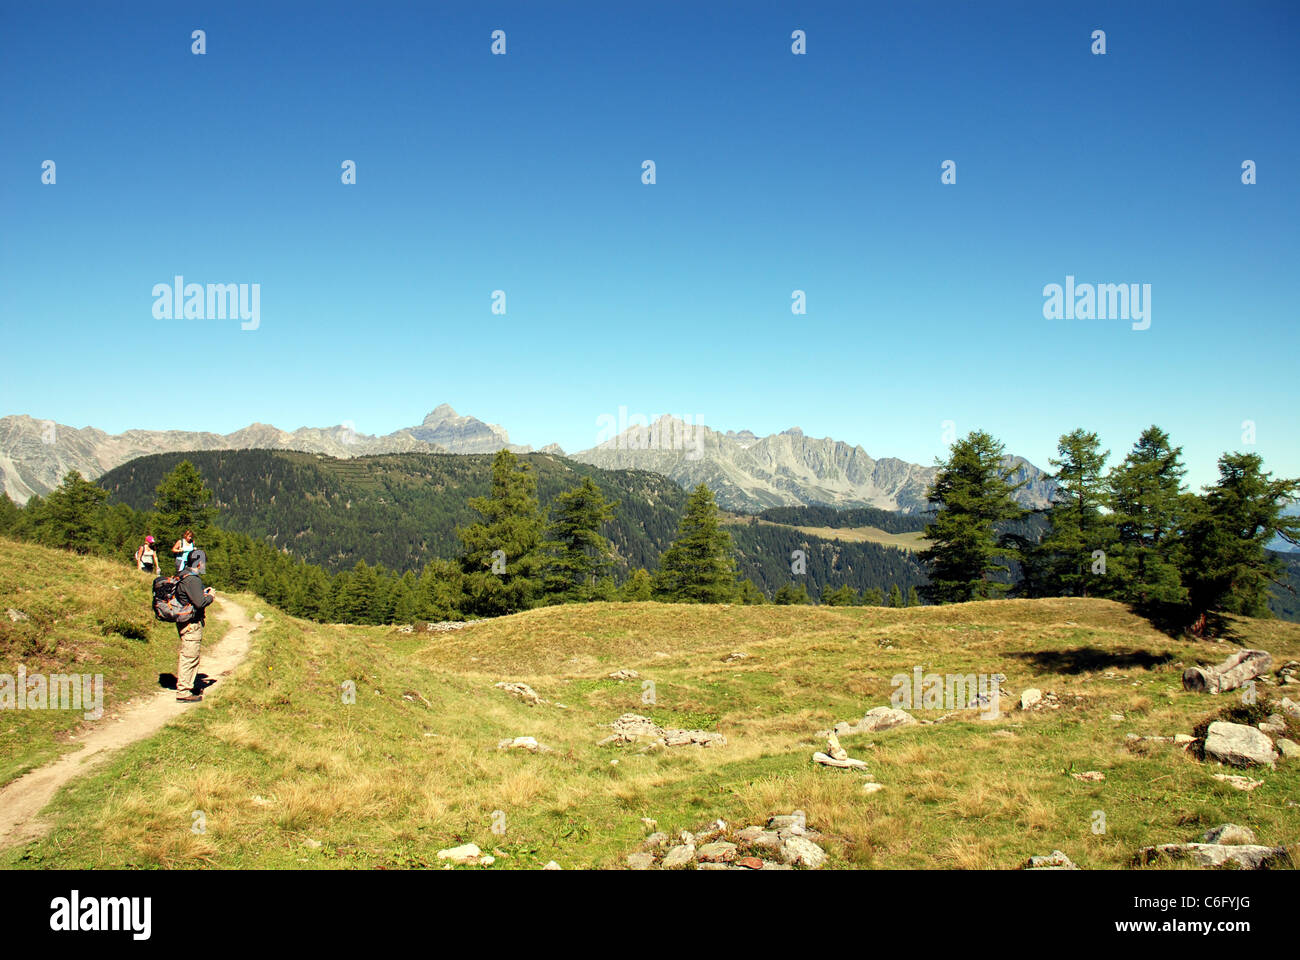 walkers follow a small path in the alps of France with high mountains in the background - Stock Image